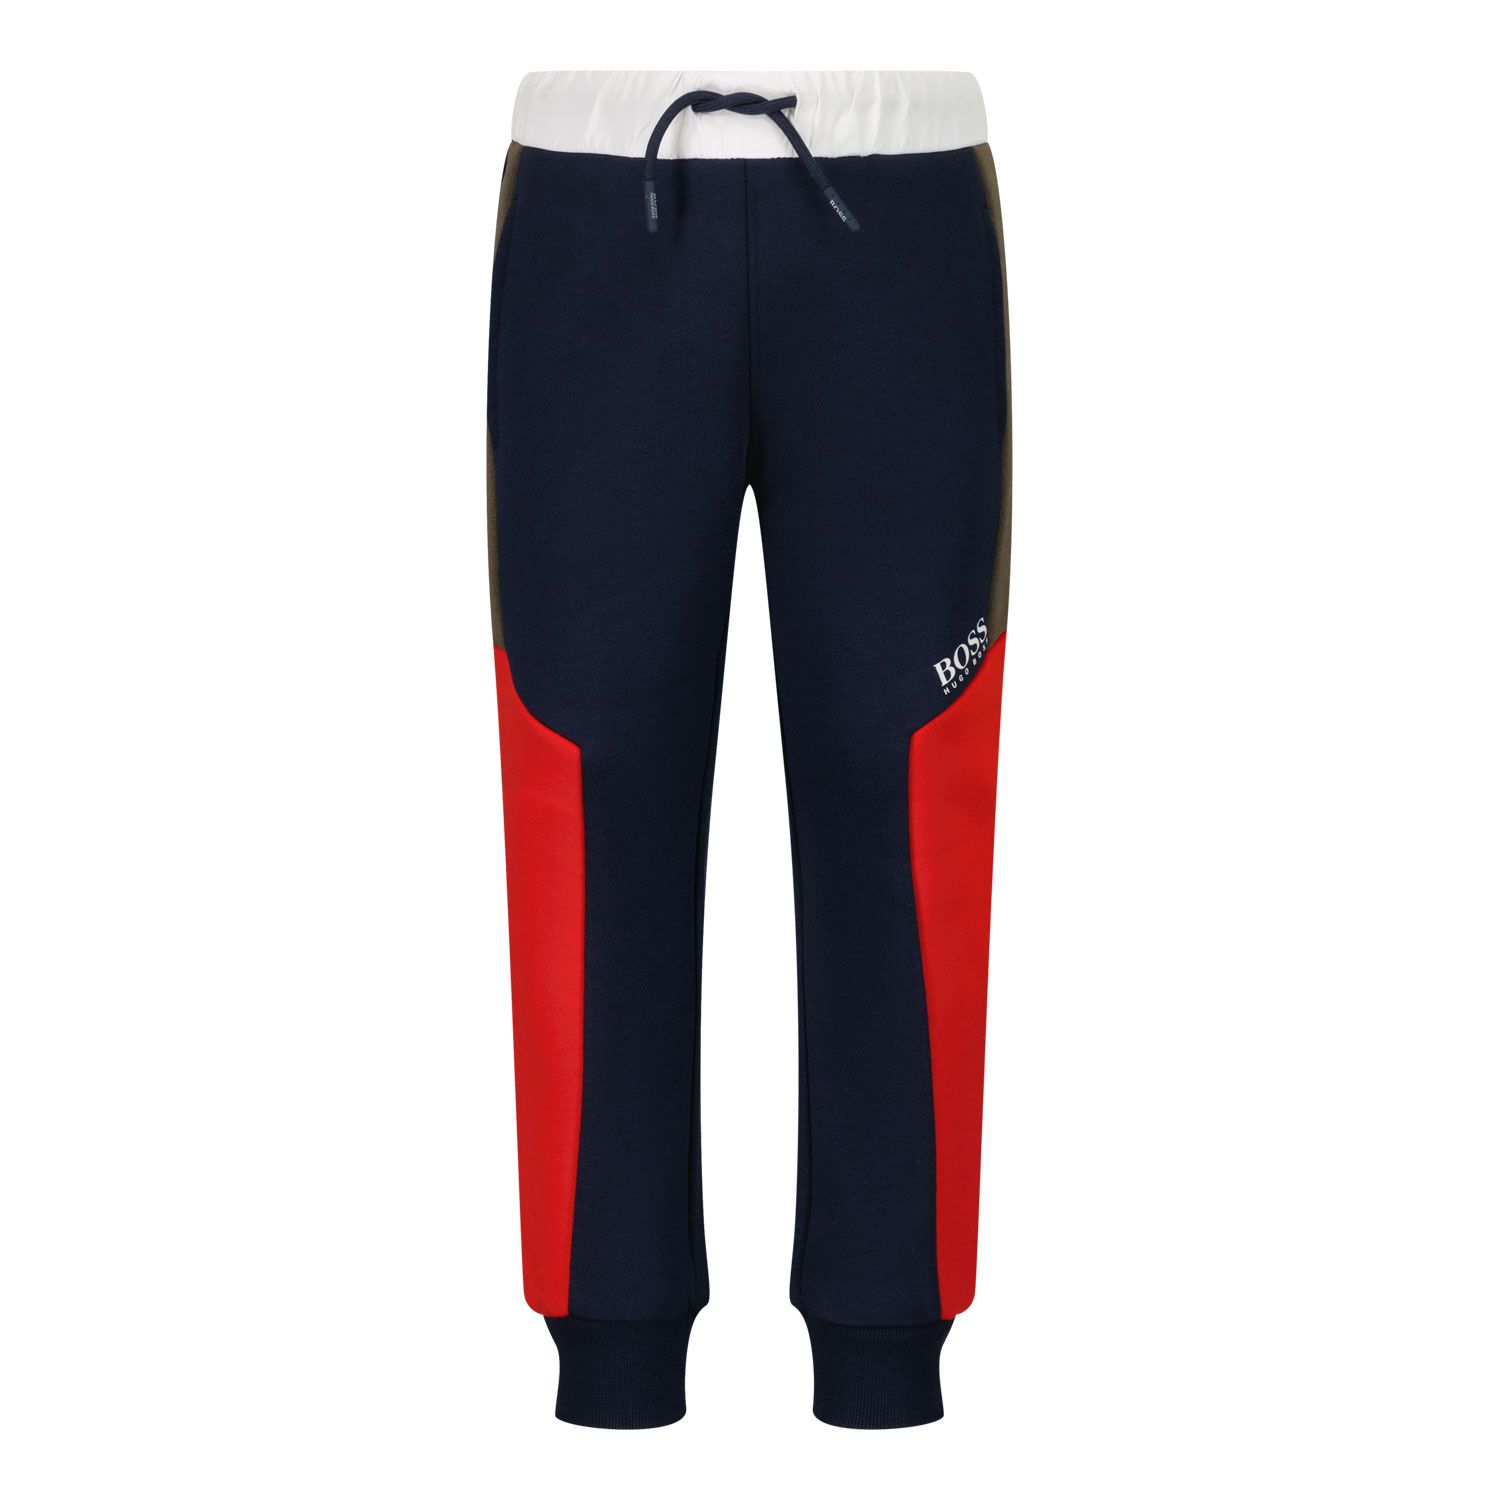 Picture of Boss J04420 baby pants navy